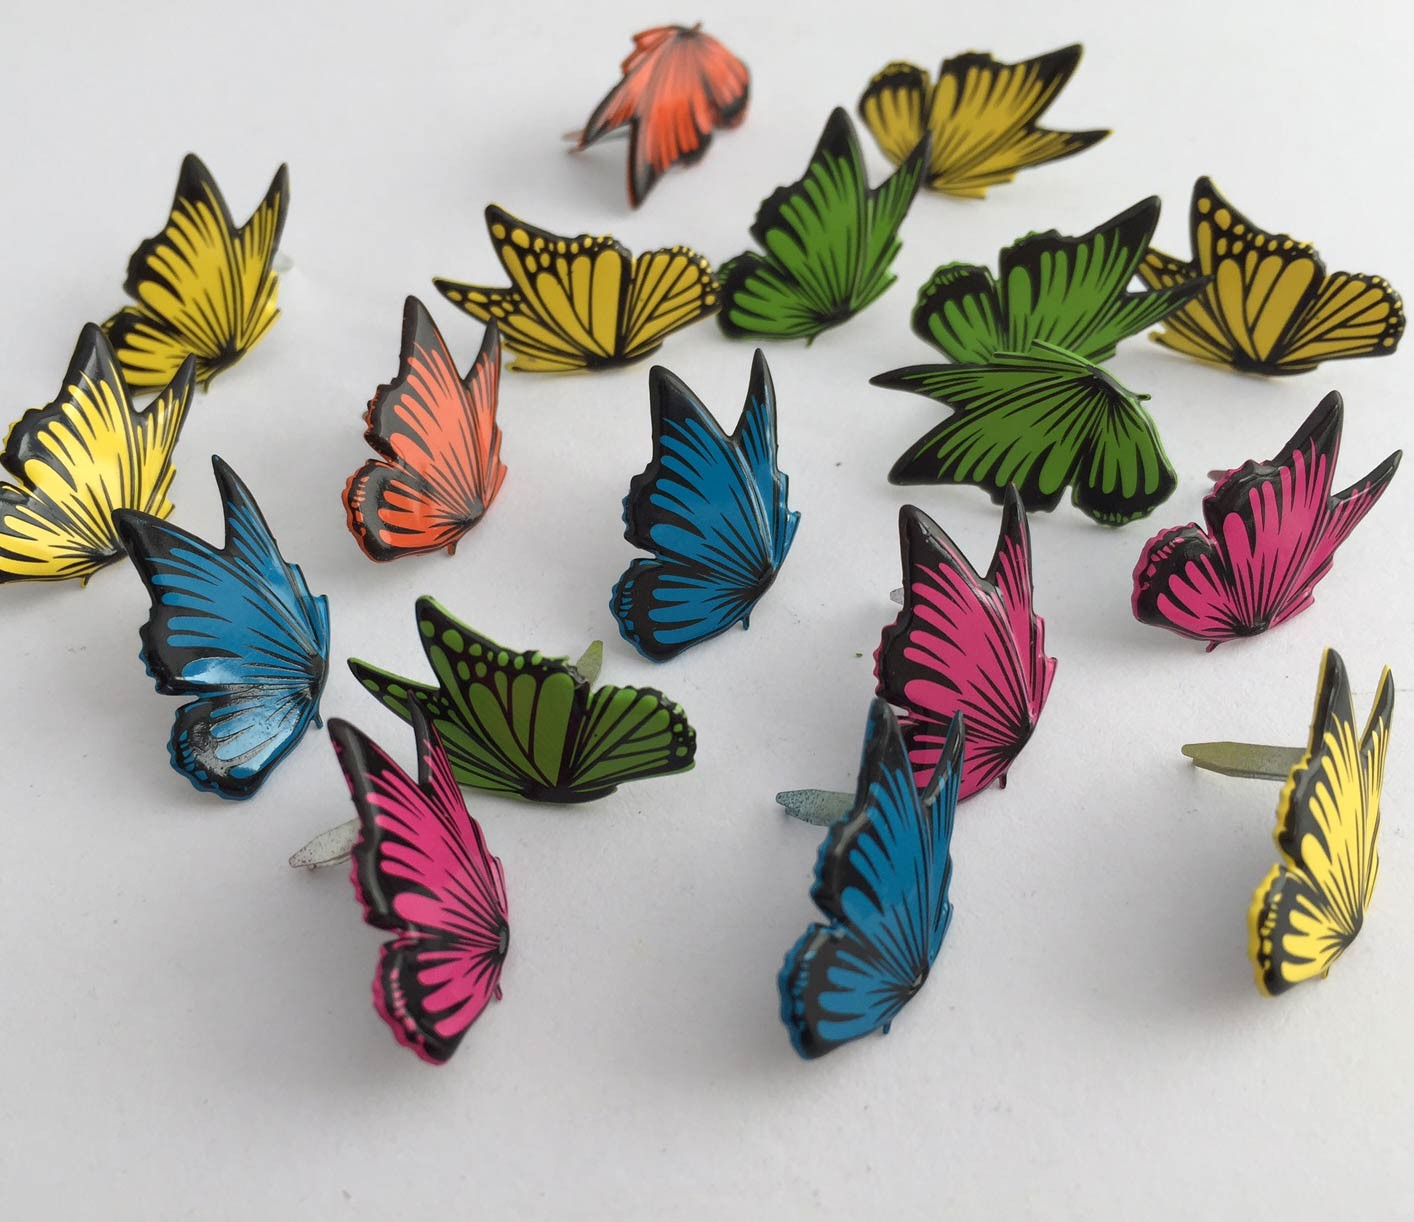 Beautifully Detailed Butterfly Brads